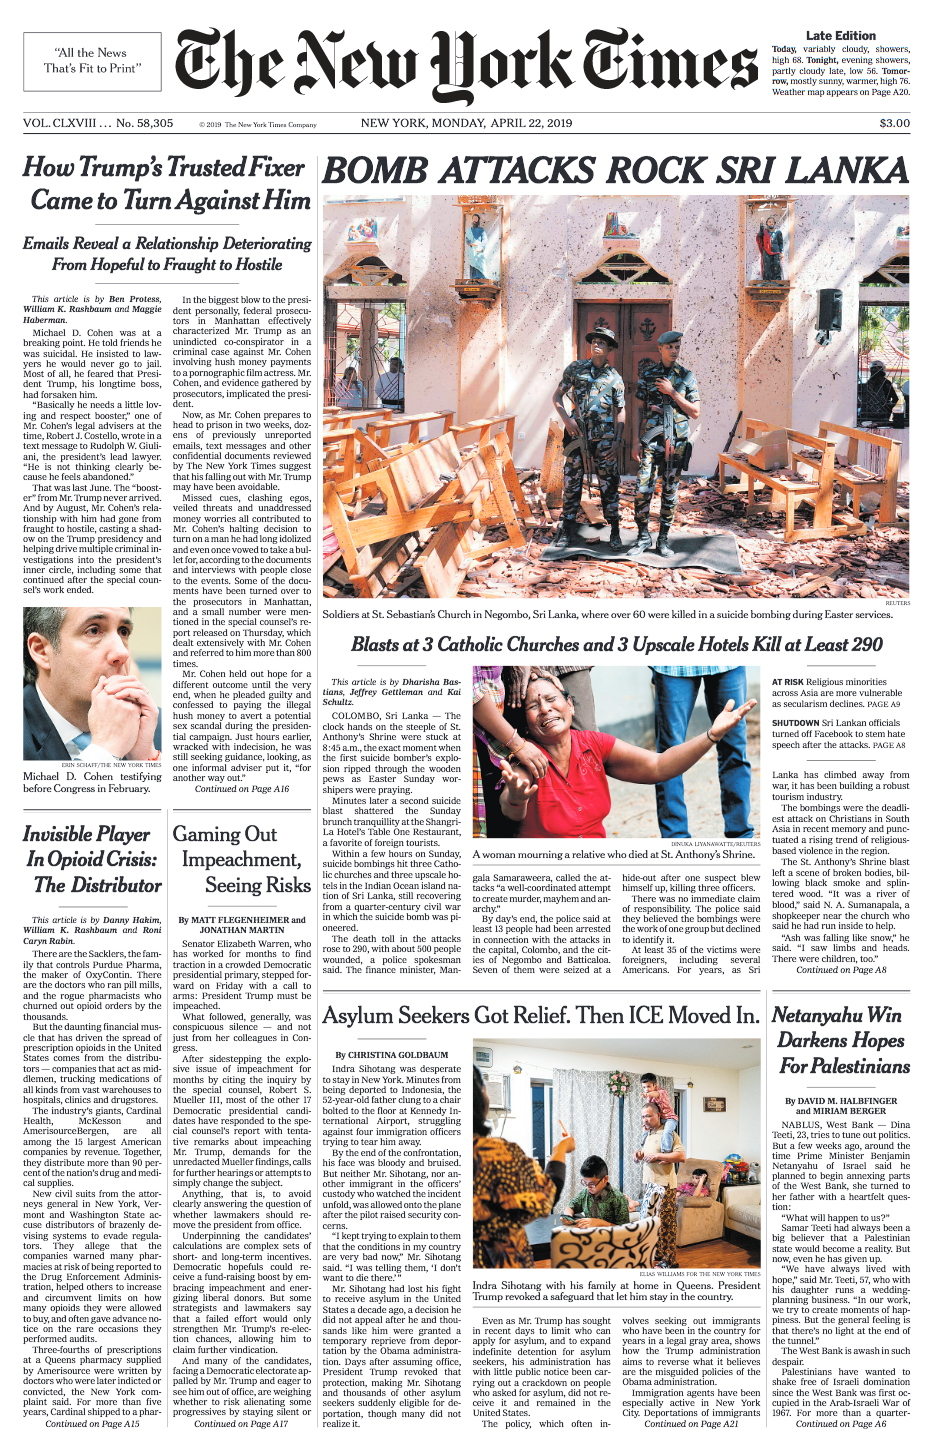 NYT_FrontPage_042219.png